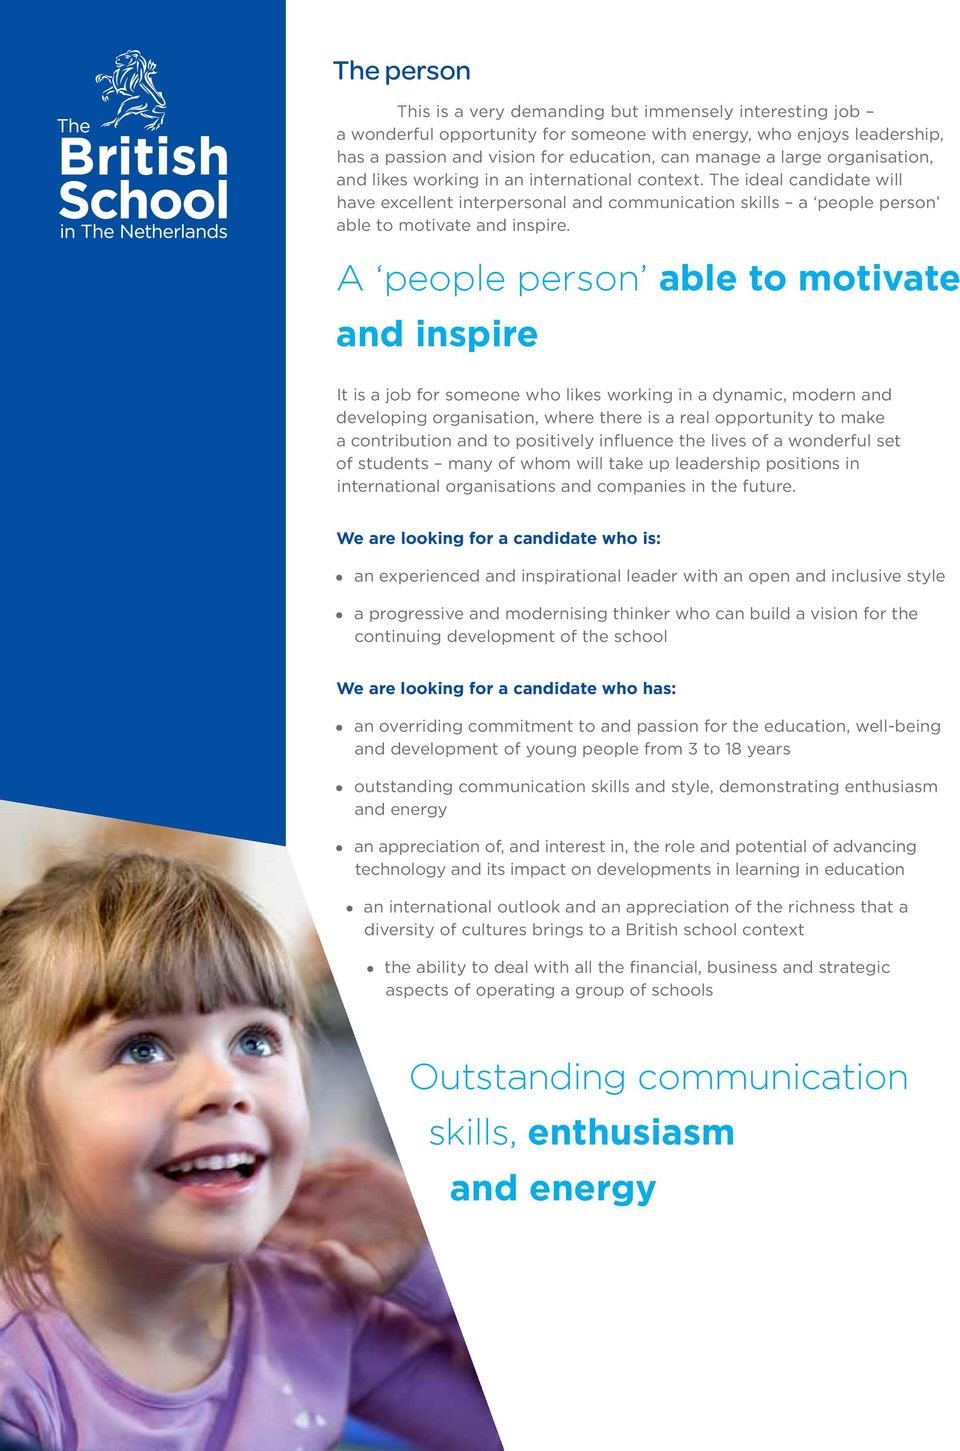 A people person able to motivate and inspire It is a job for someone who likes working in a dynamic, modern and developing organisation, where there is a real opportunity to make a contribution and